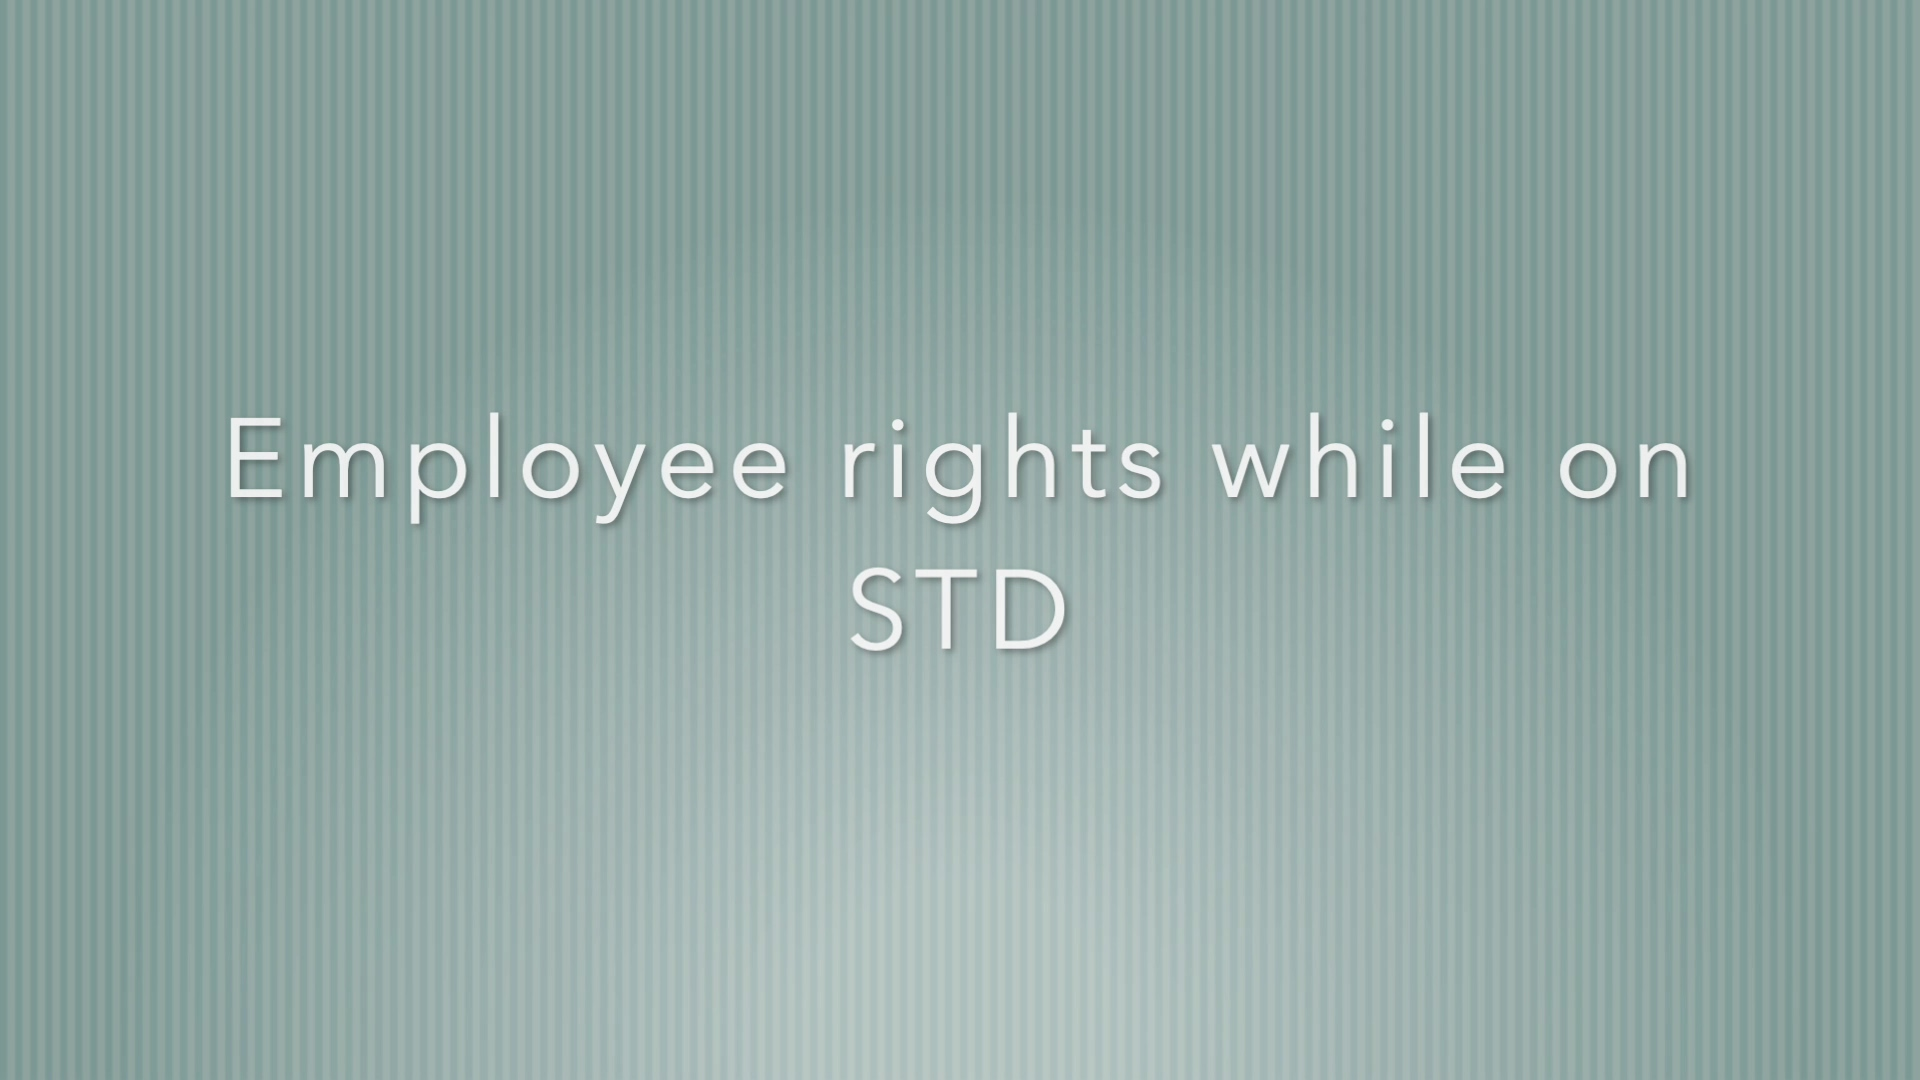 Employee rights on STD